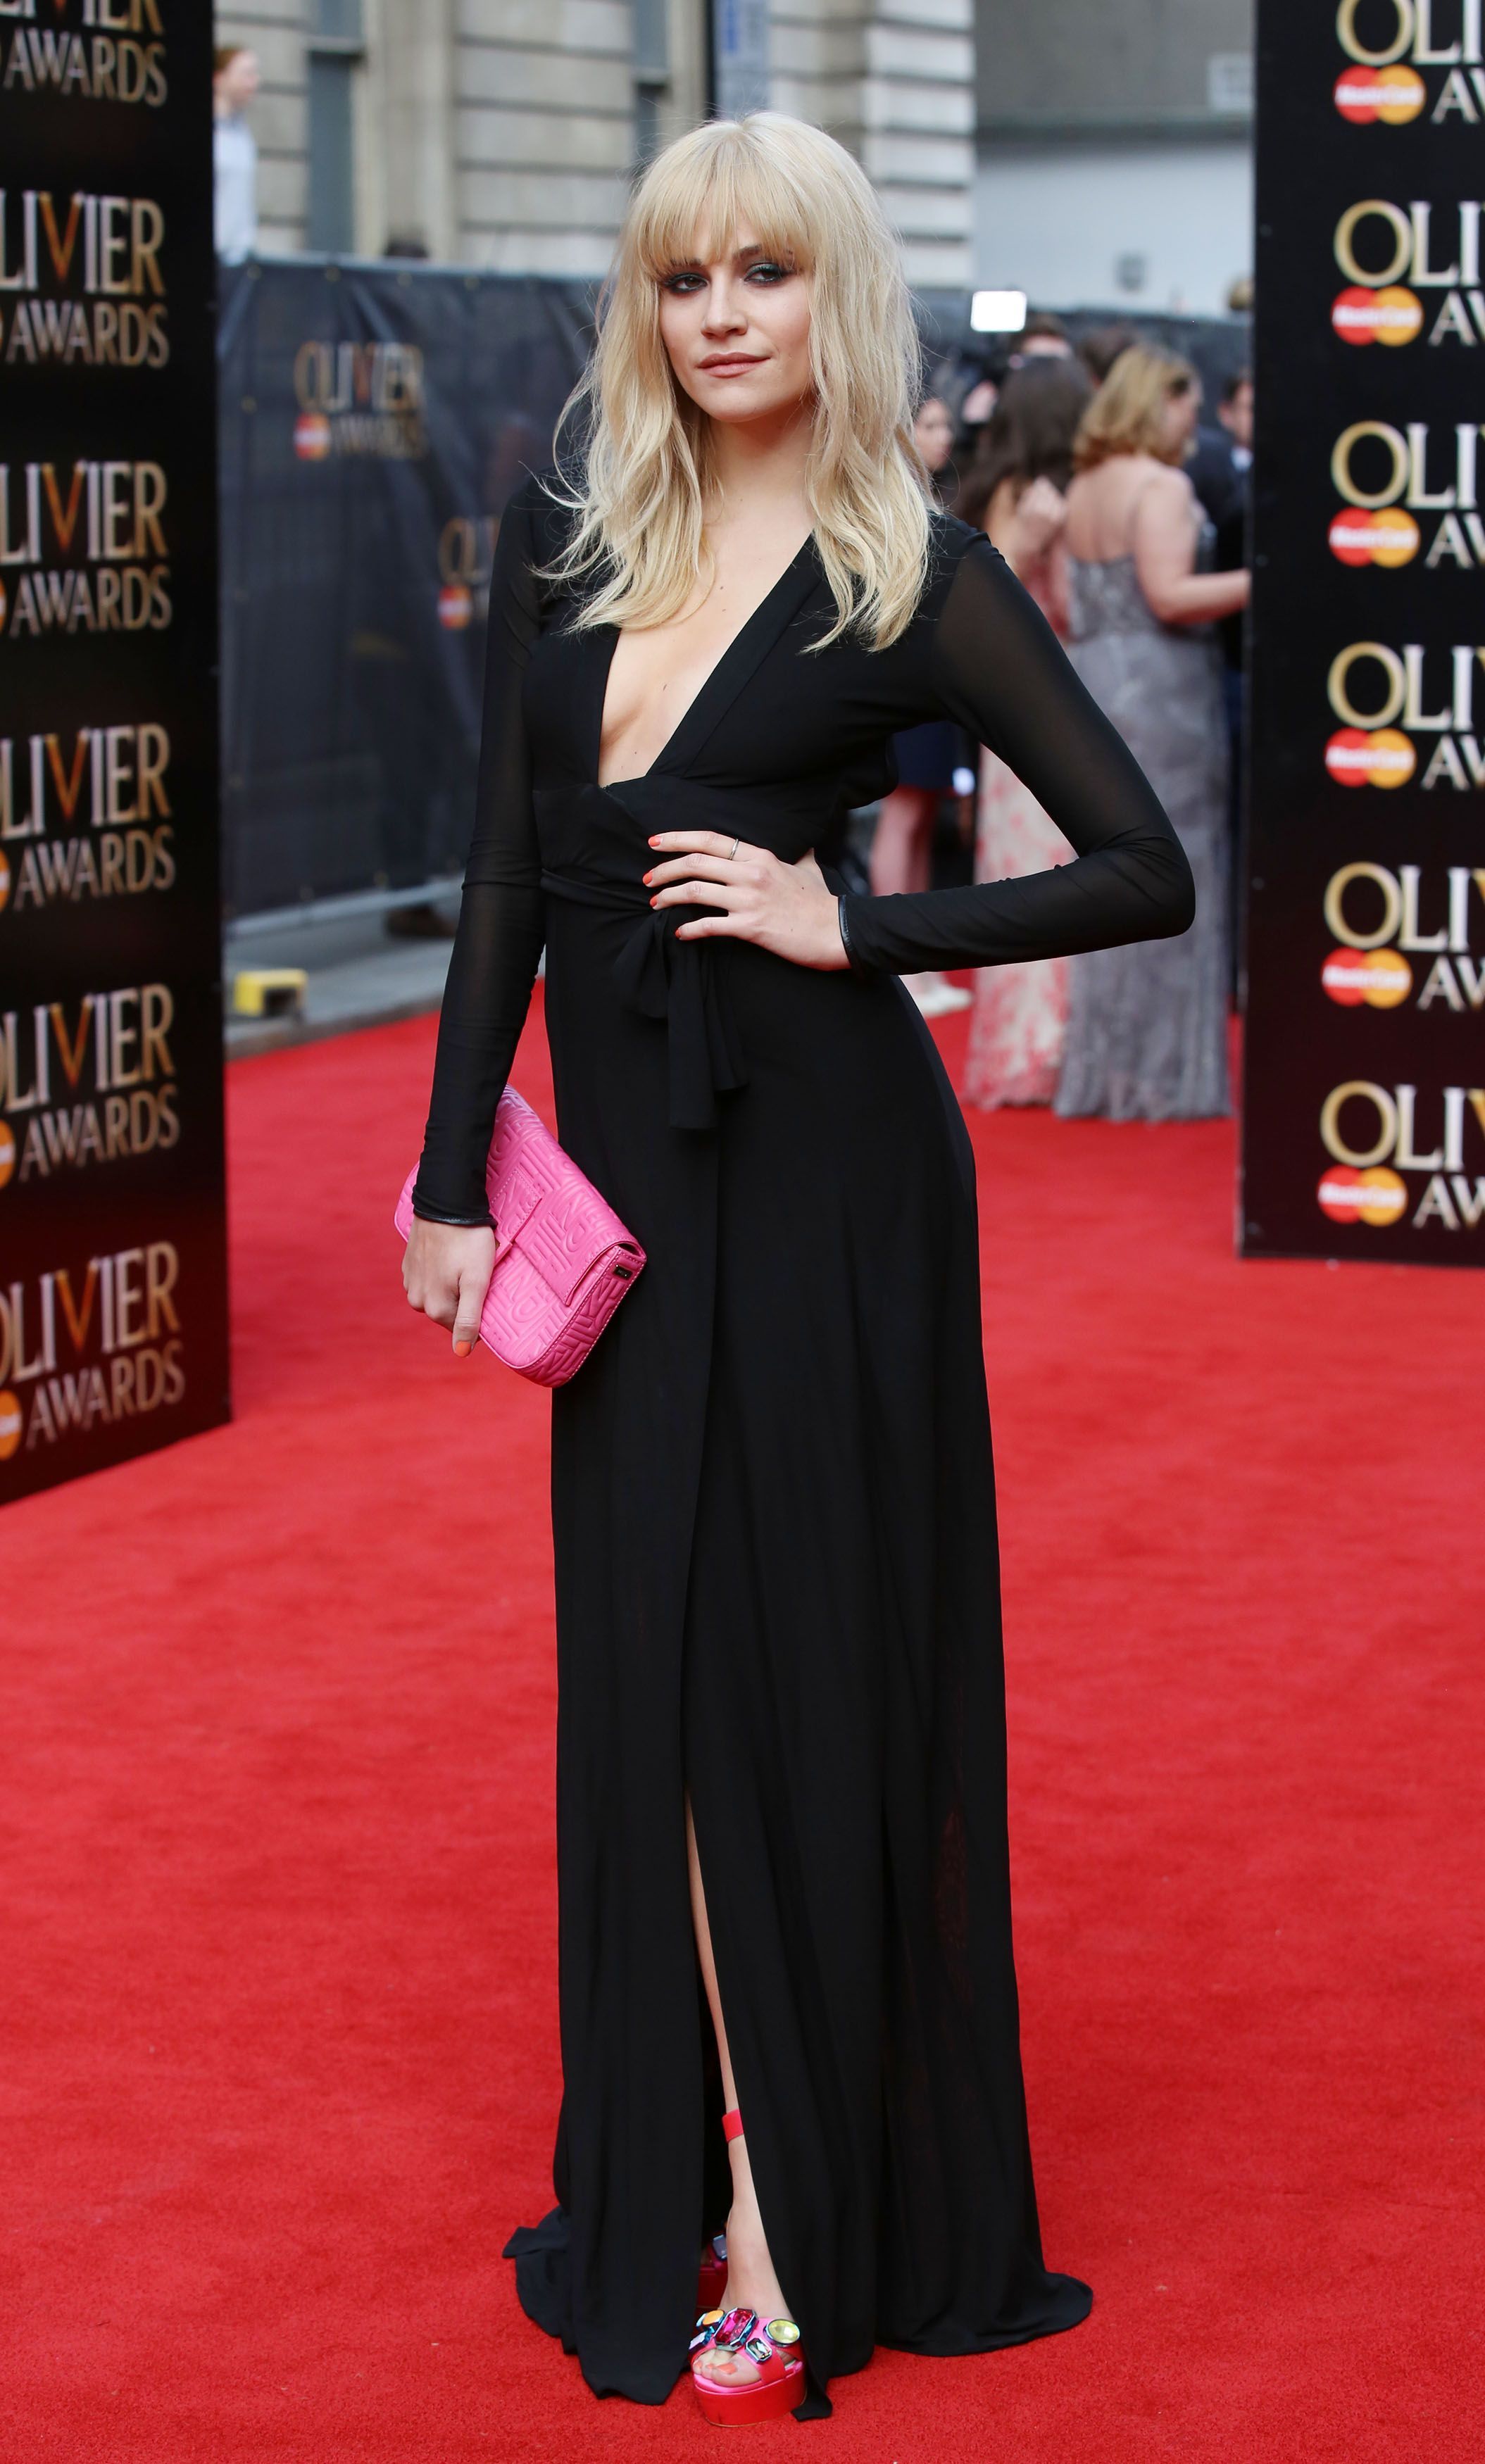 Amanda Abbington Sexy the most glamorous gowns at the olivier awards 2015